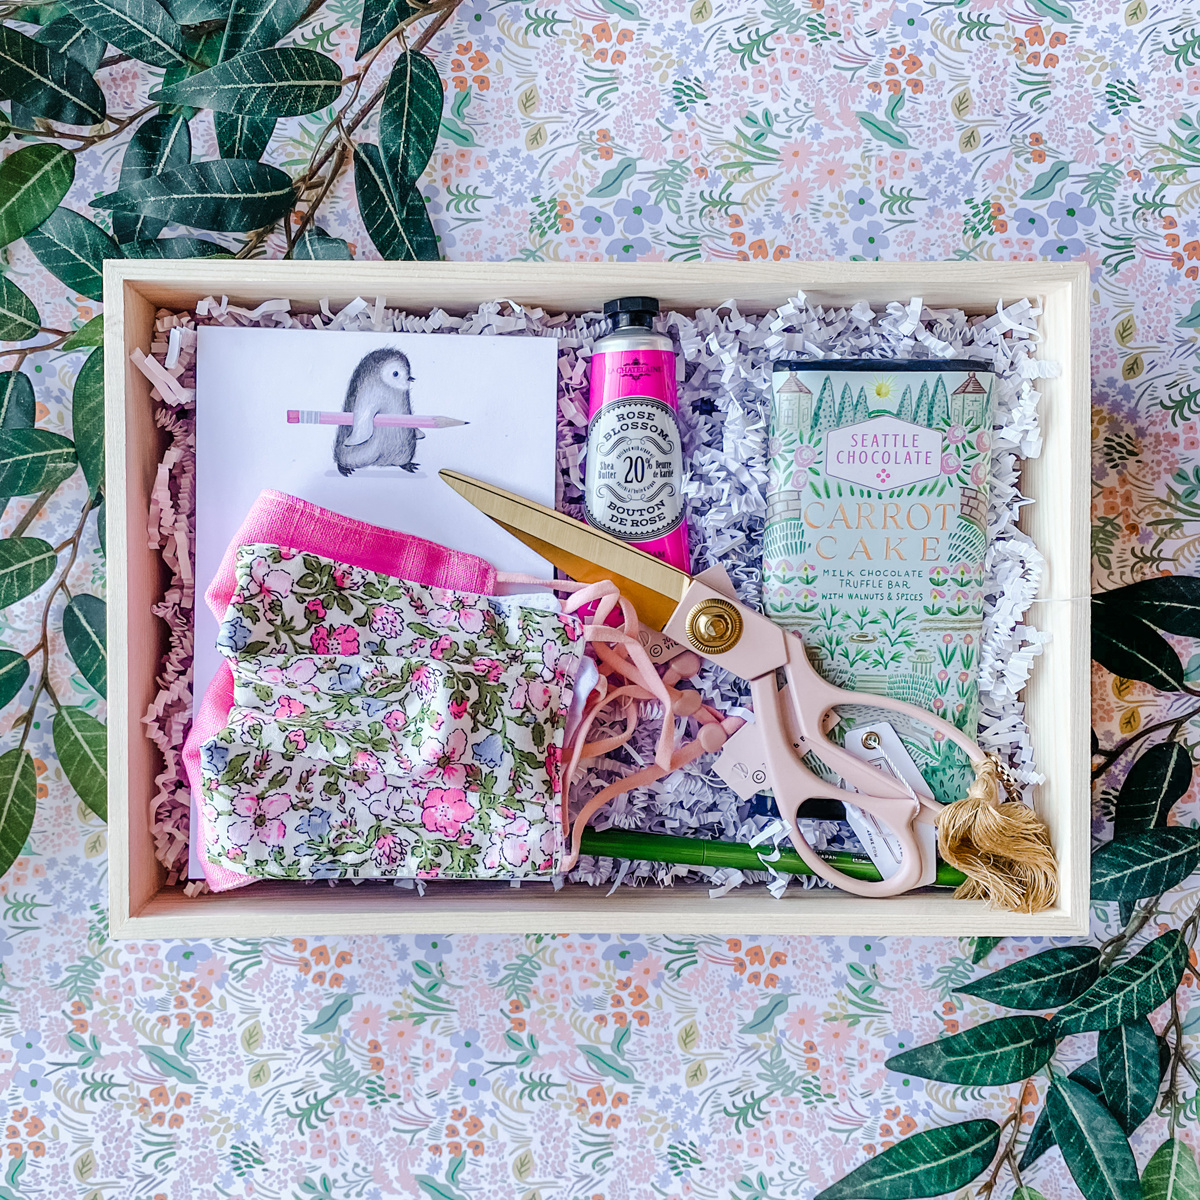 Gus and Ruby Letterpress - GR Gus & Ruby - Spring Has Sprung Gift Box